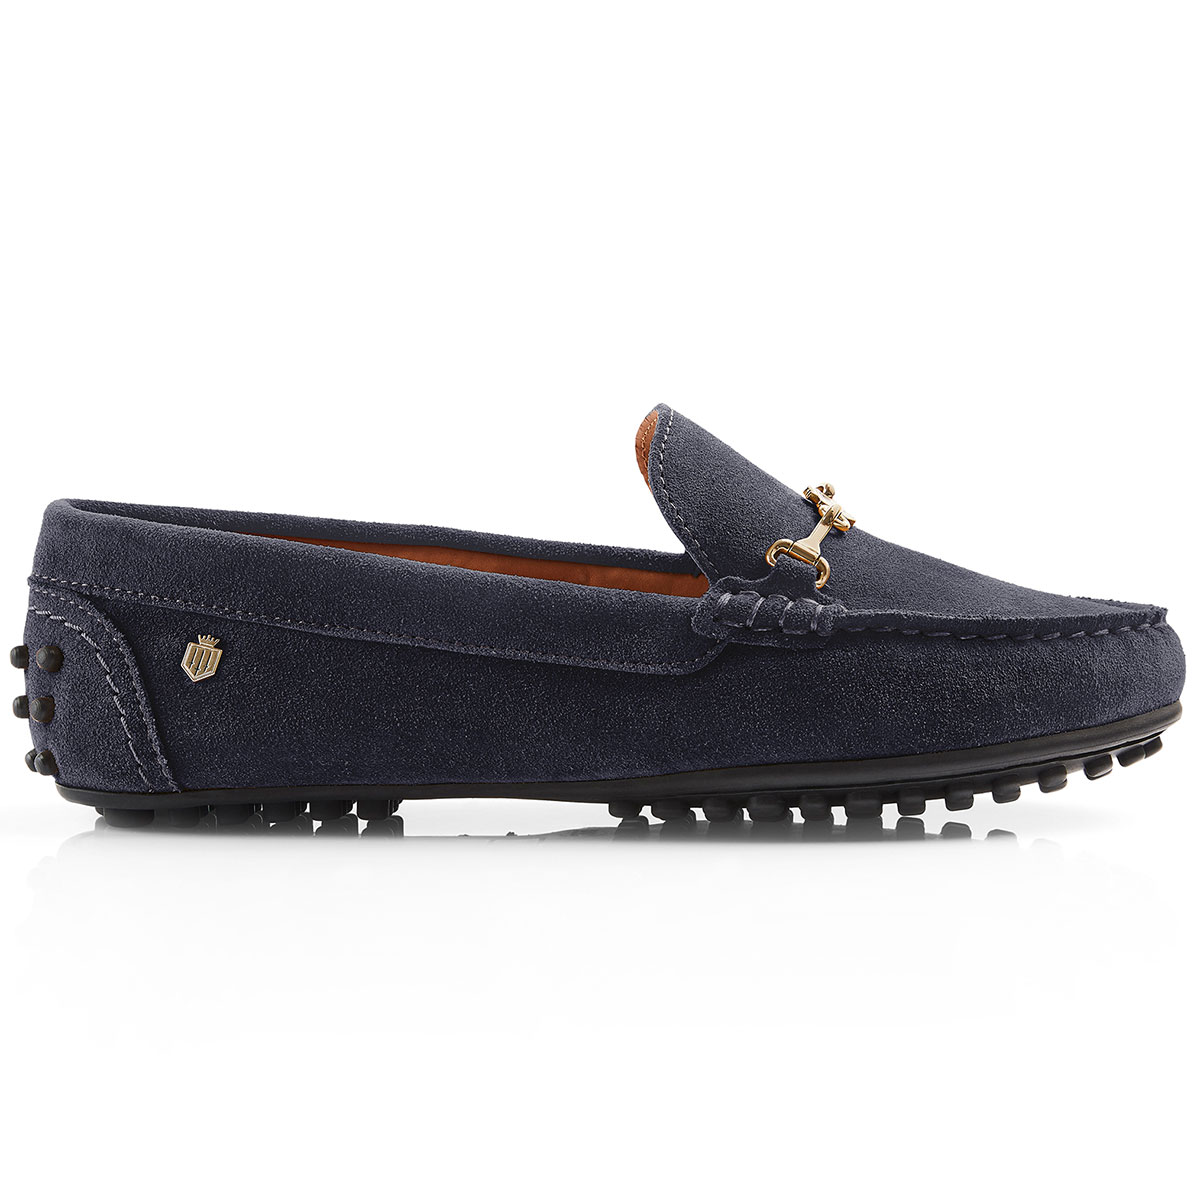 Fairfax & Favor – The Trinity Ladies Loafer – Navy Suede